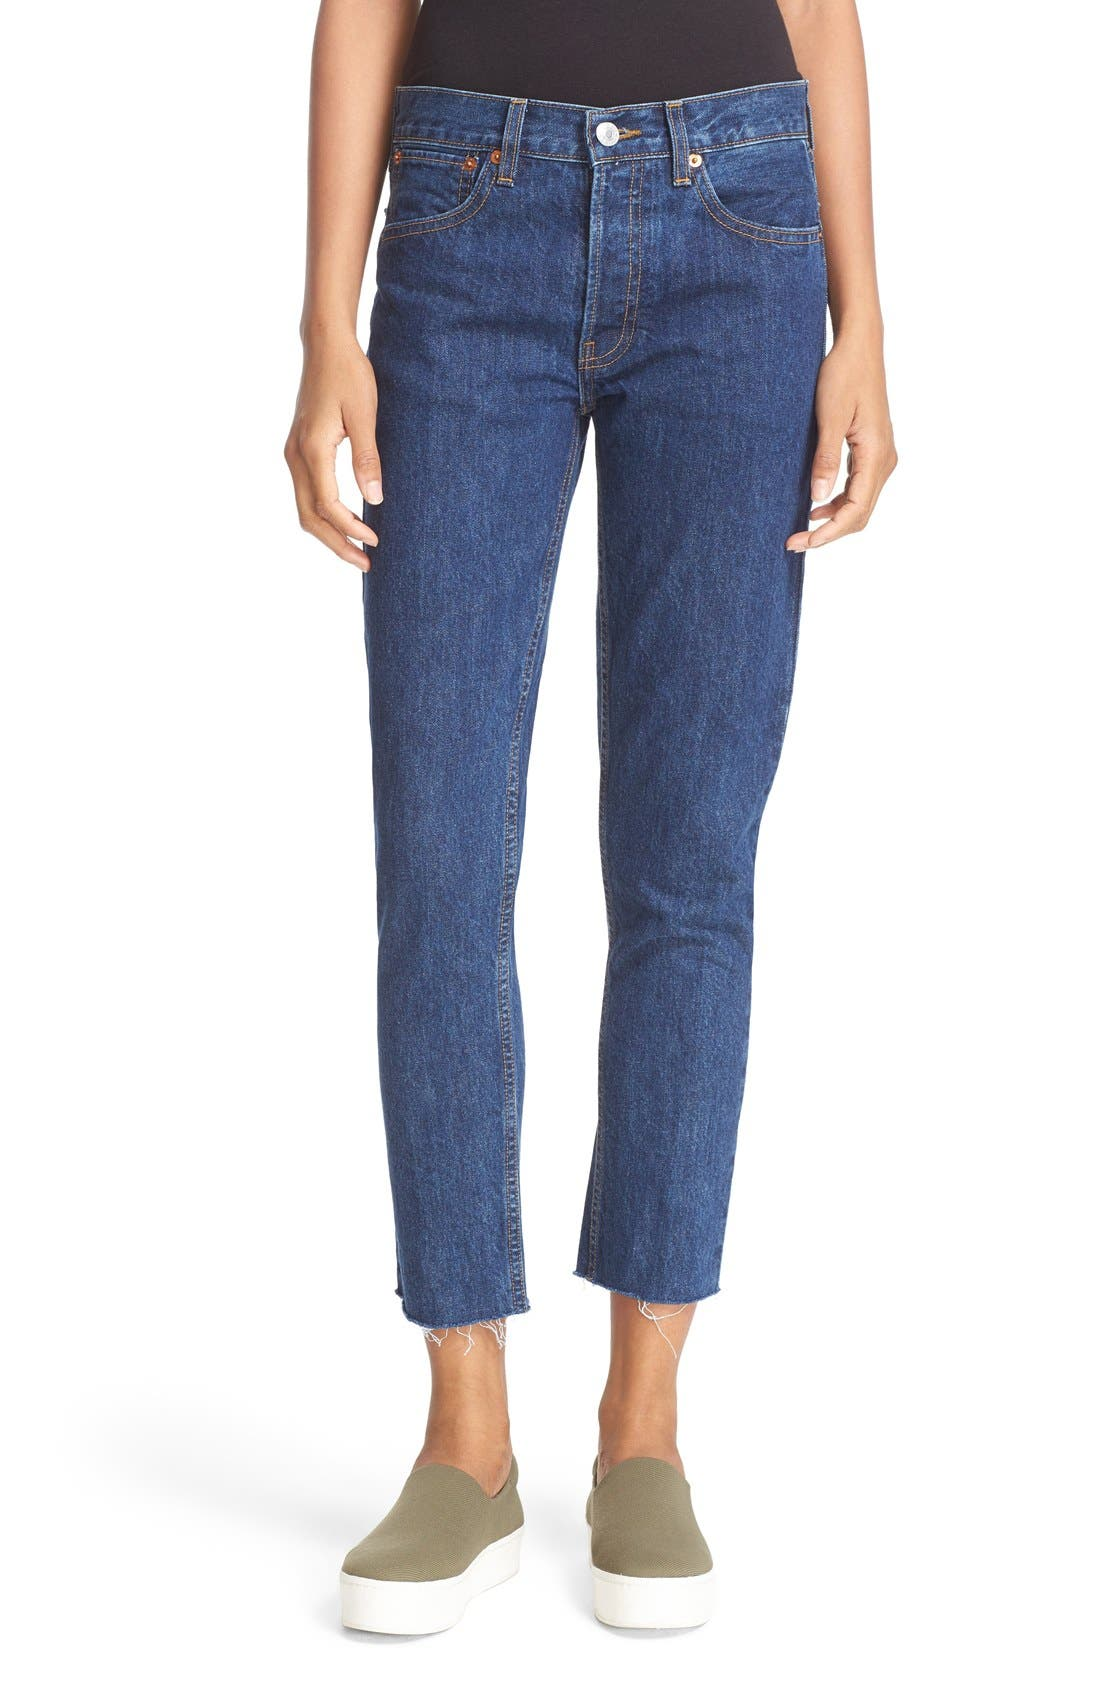 Alternate Image 1 Selected - Re/Done Originals High Waist Crop Jeans